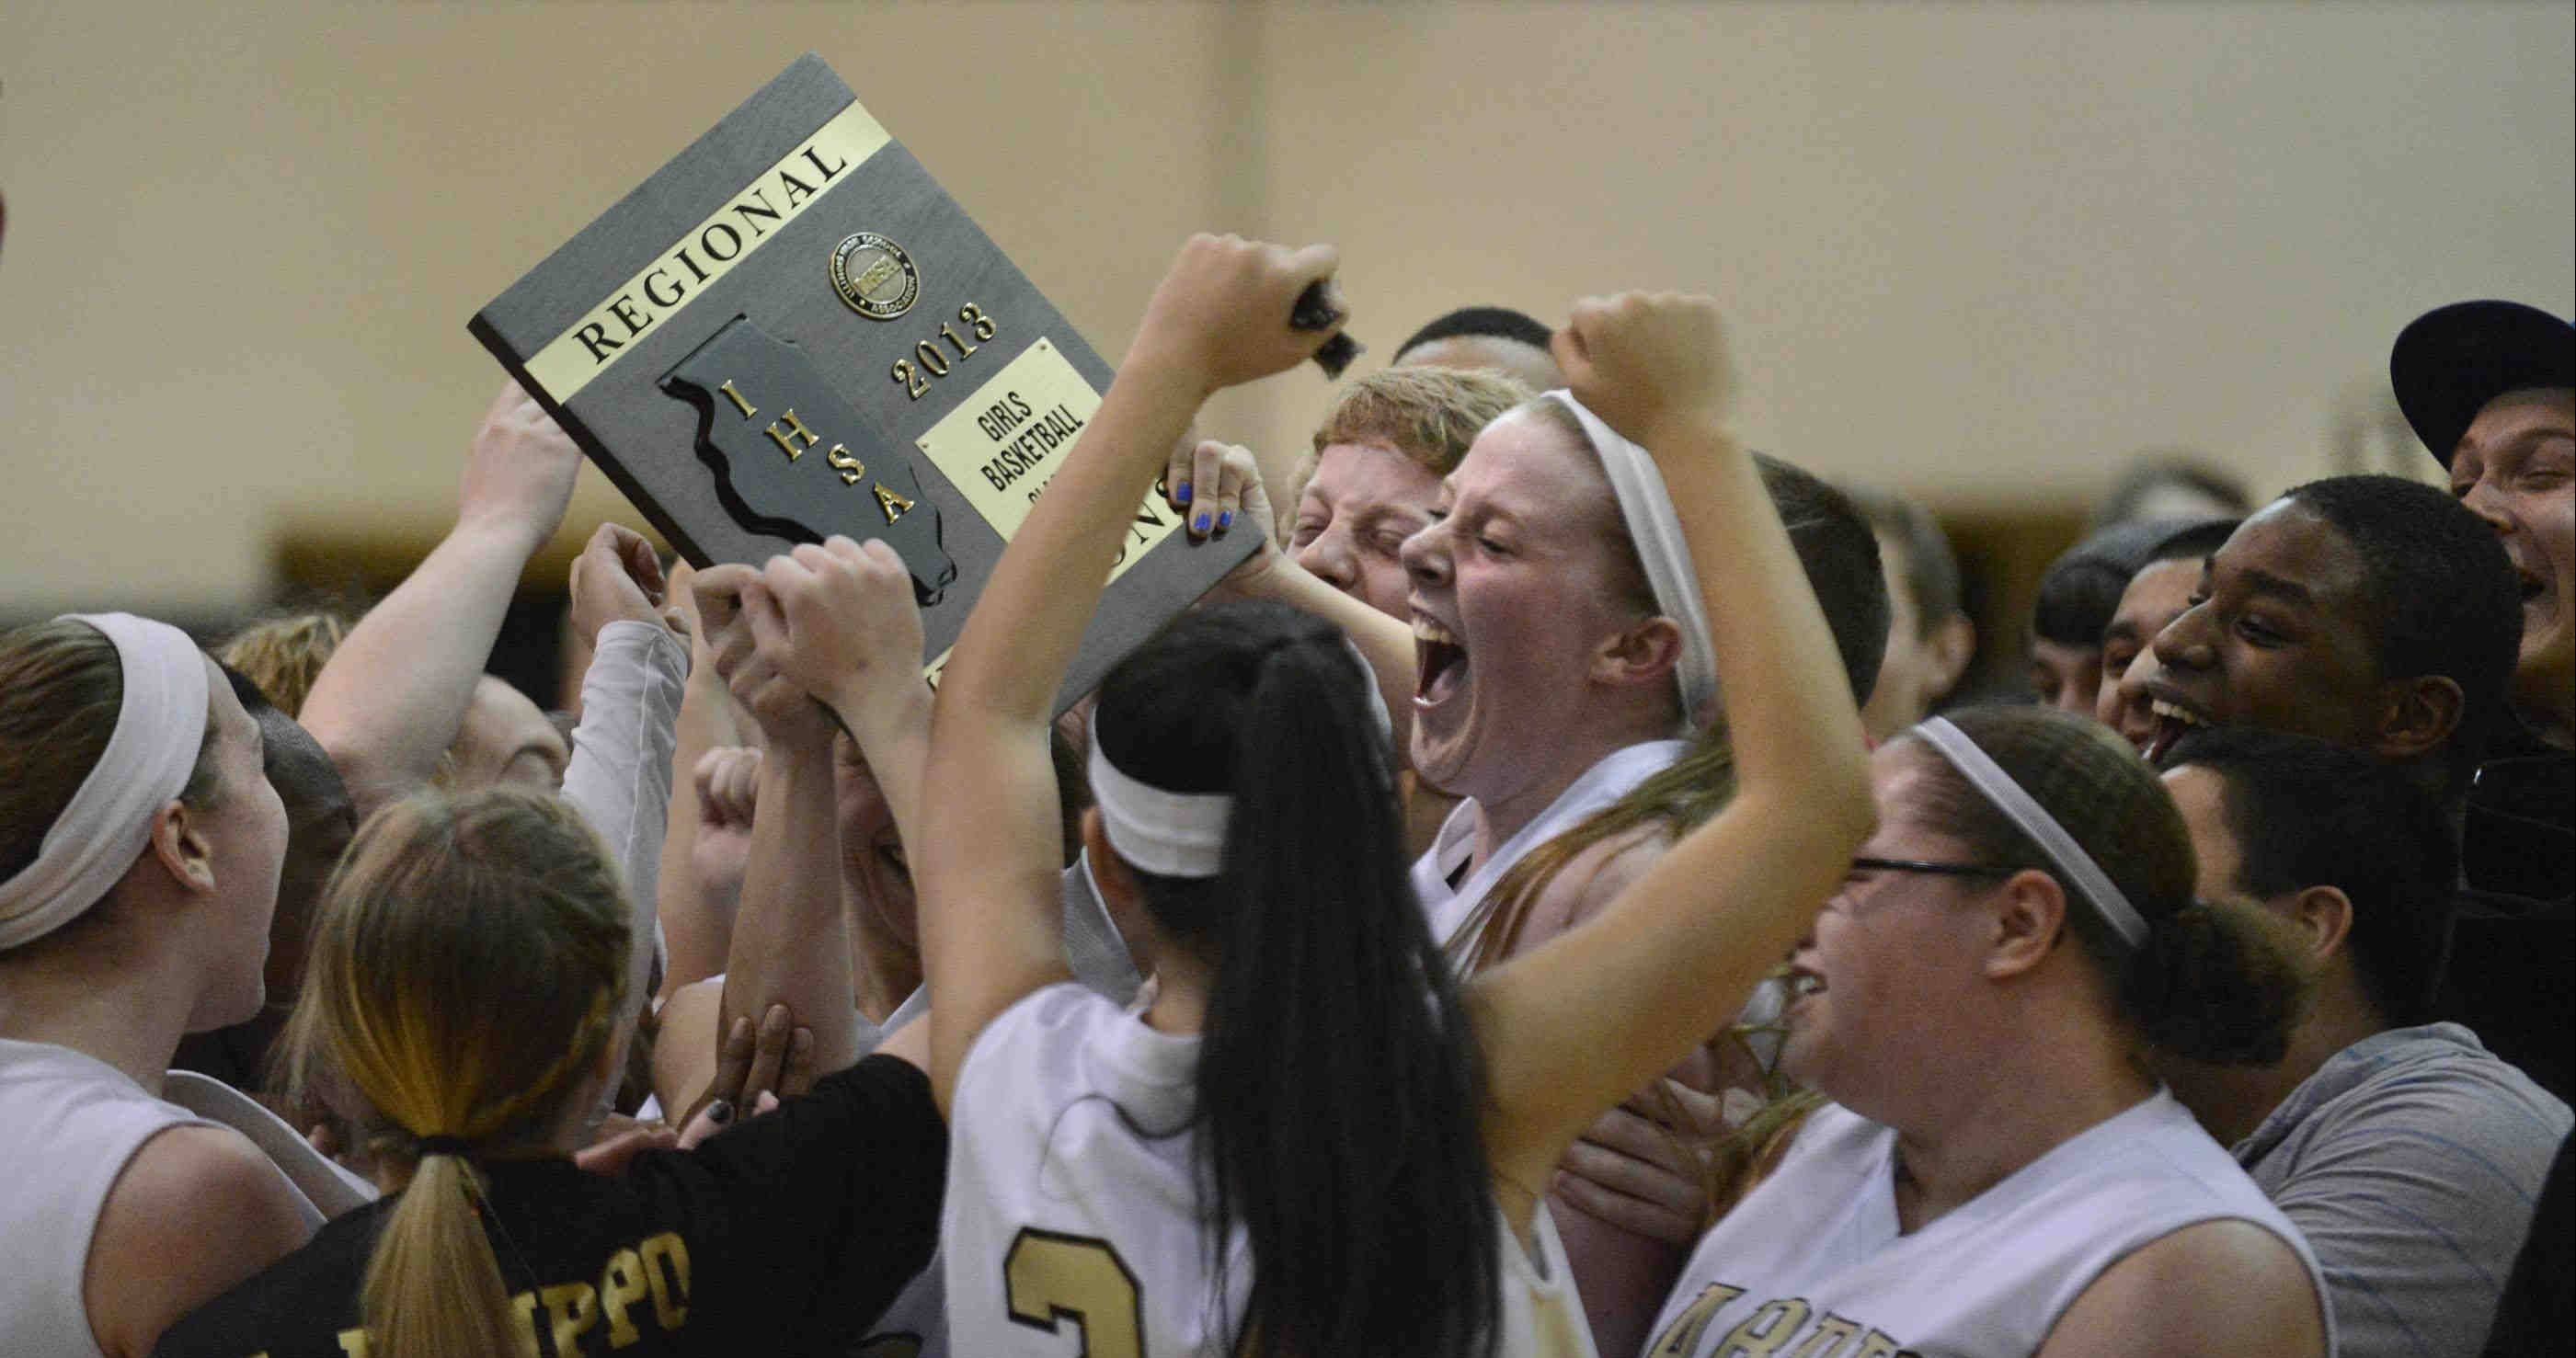 Streamwood celebrates its win over South Elgin in the Class 4A regional championship game Thursday in Streamwood. It was their first regional title since 1988.